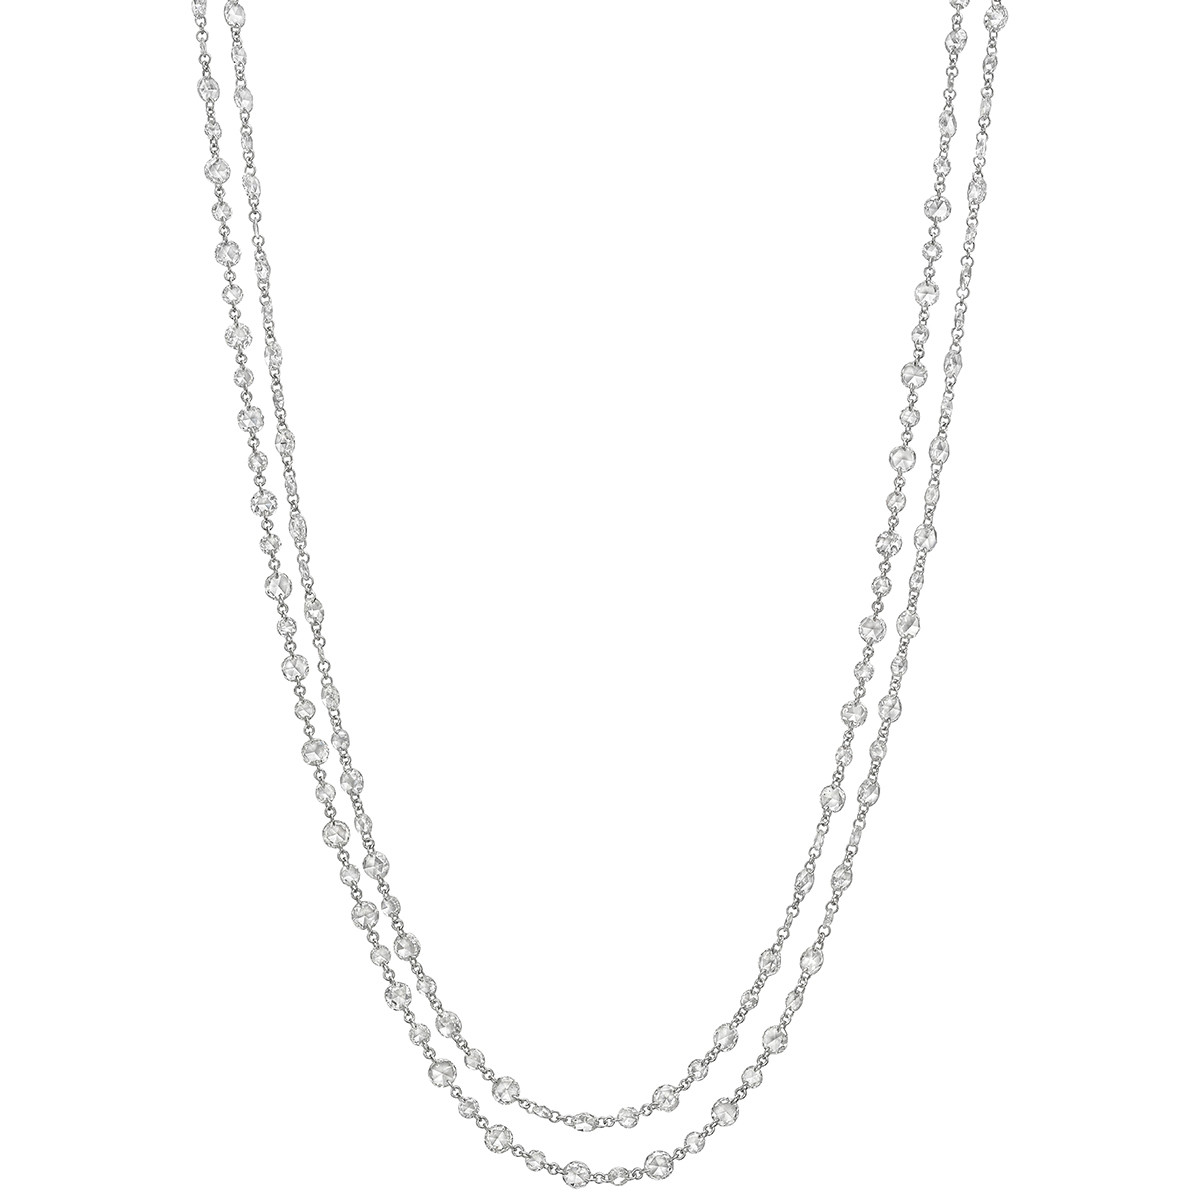 Rose-Cut Diamond Chain Long Necklace (14.22 ct tw)